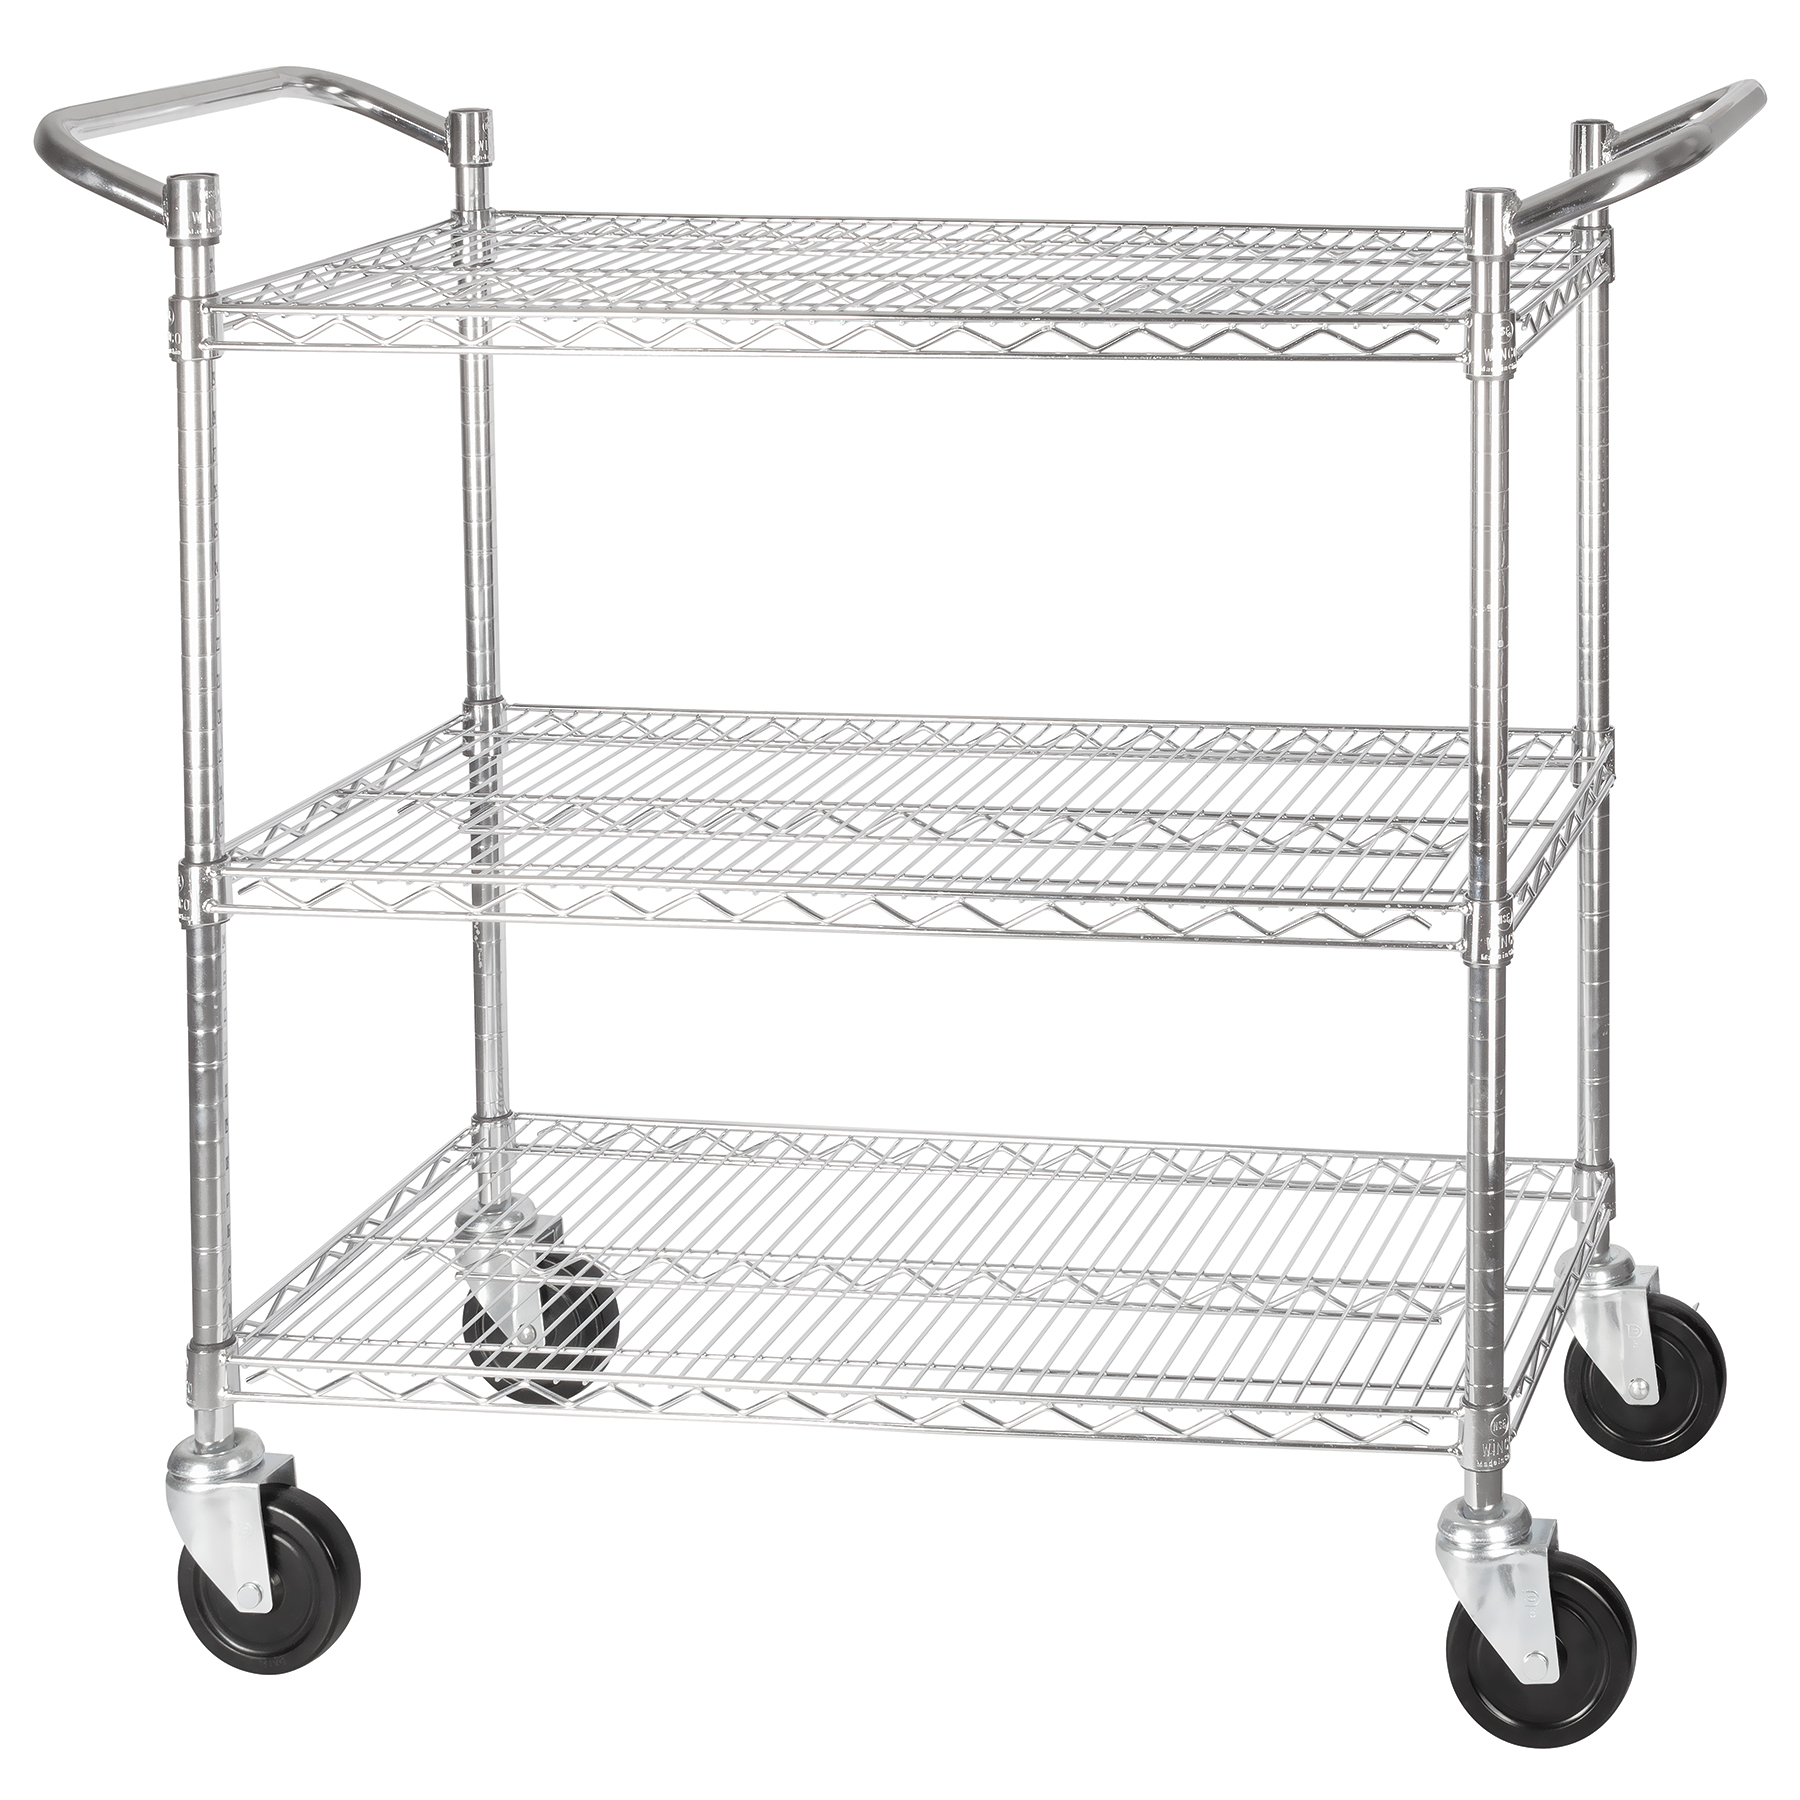 Winco VCCD-1836B wire shelving